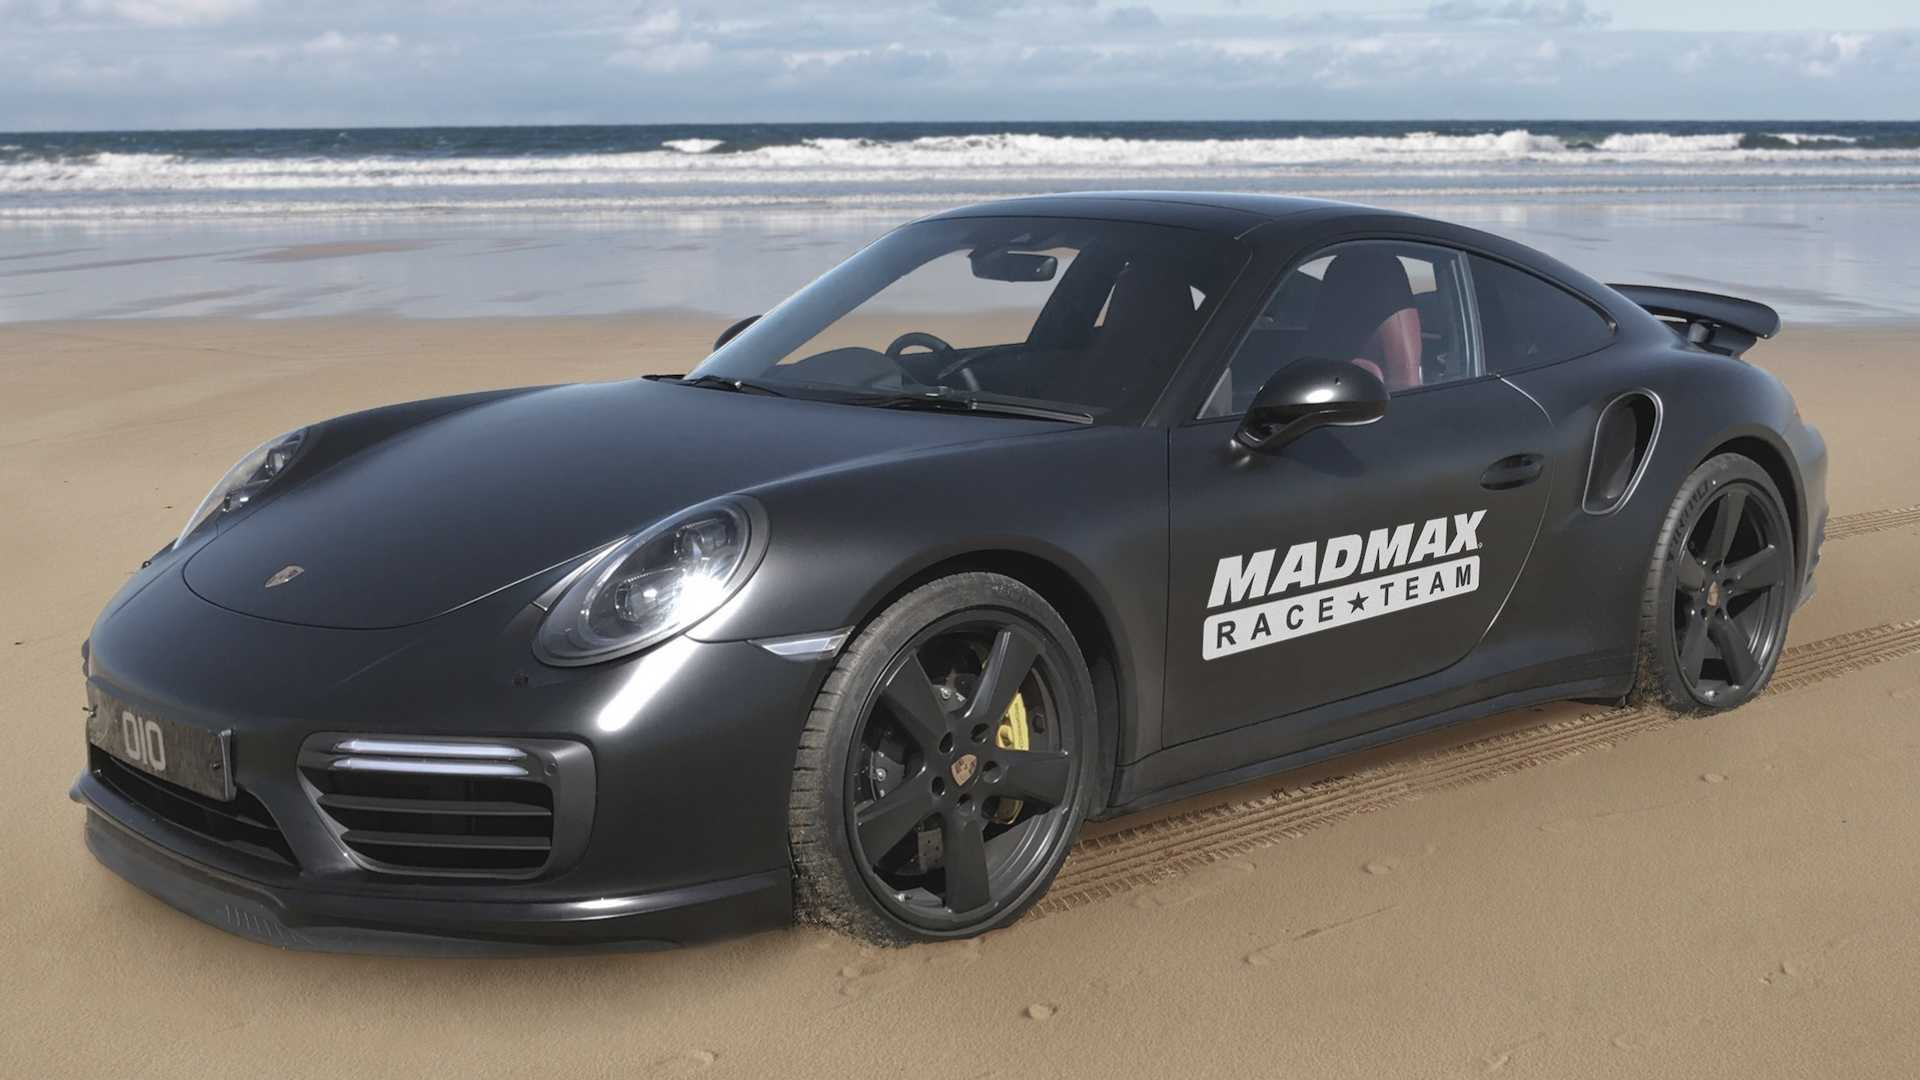 porsche-911-turbo-s-madmax-race-team